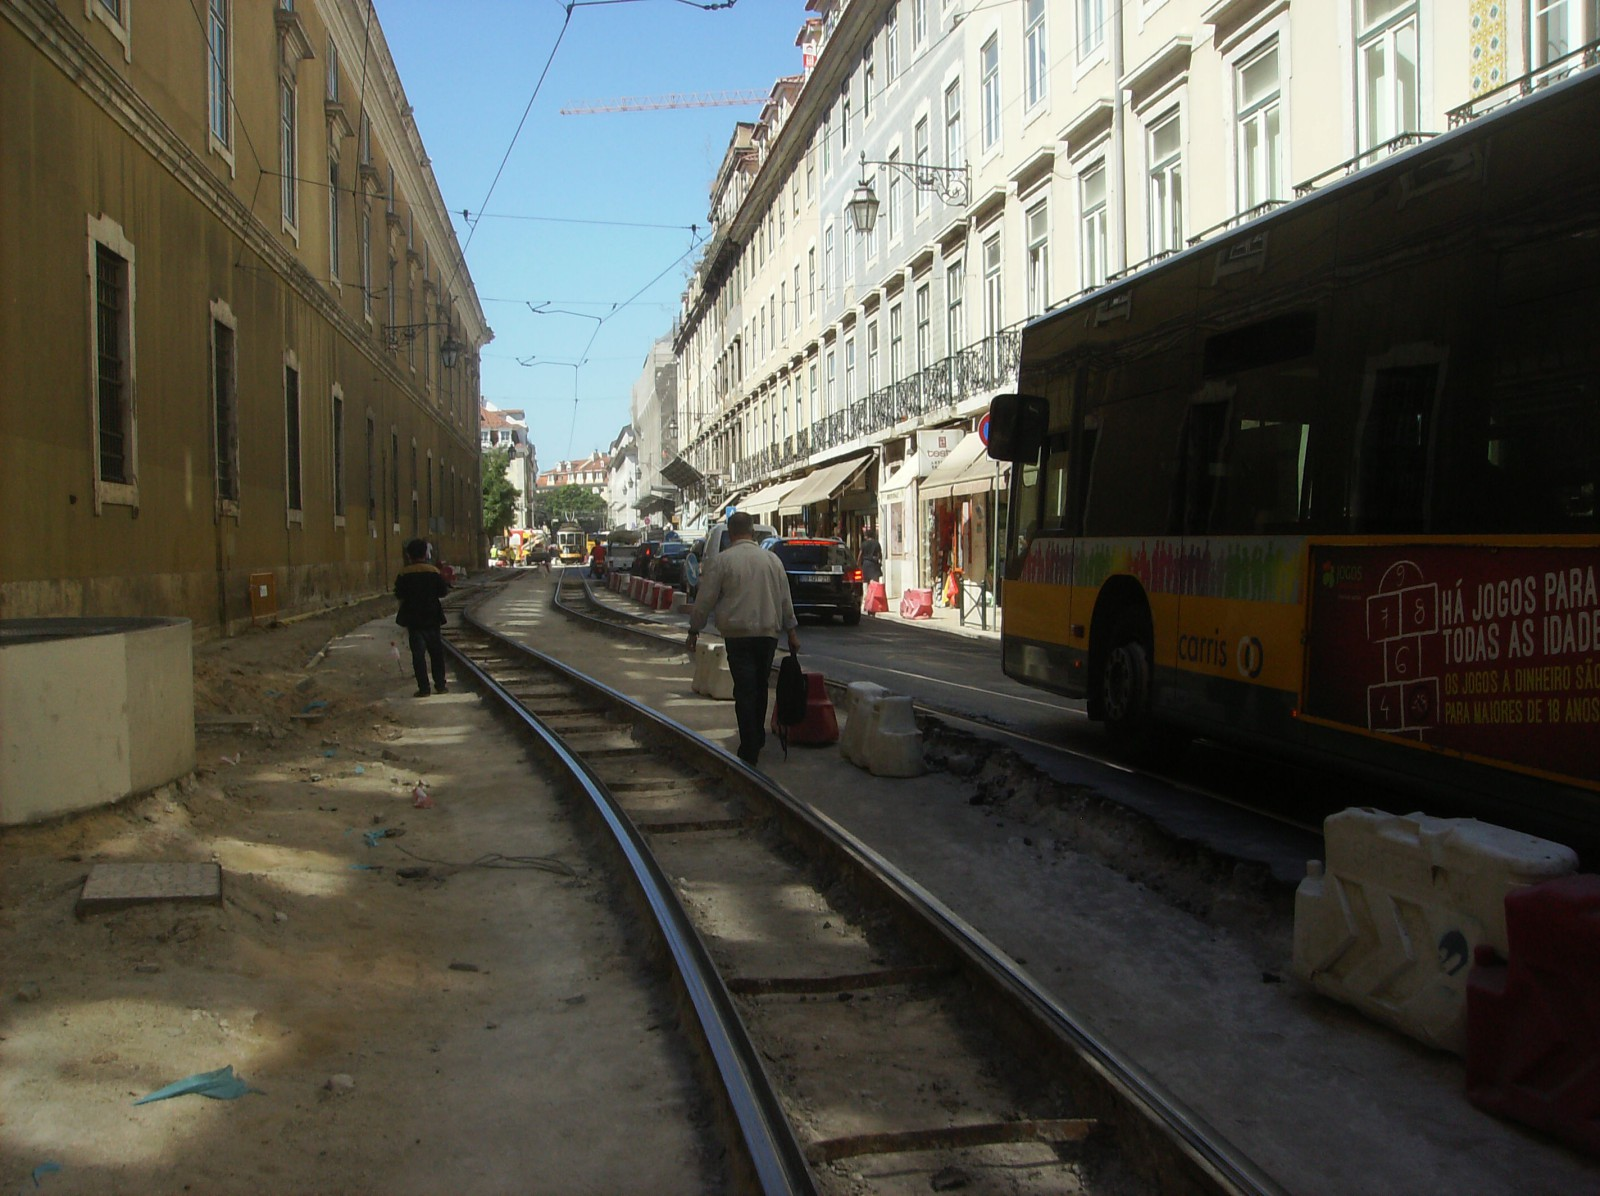 Rua do Arsenal 011.JPG